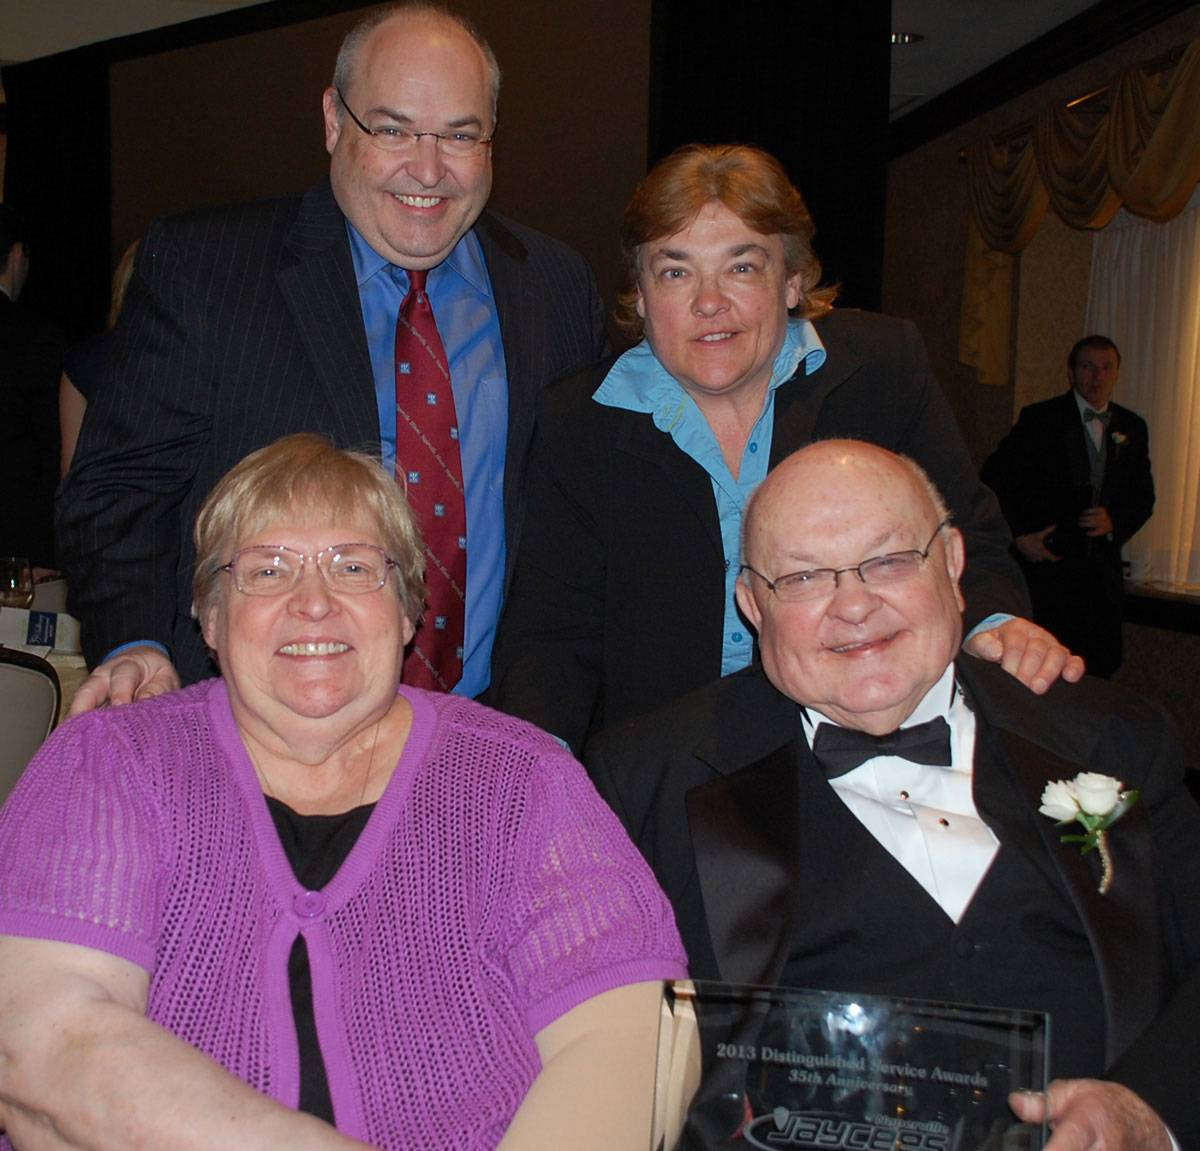 Pat Pradel, bottom left, was married to longtime Naperville Mayor George Pradel for 55 years before she died Saturday at age 75. She's seen here in May 2013 with two of the couple's children, Gary and Carol Pradel.